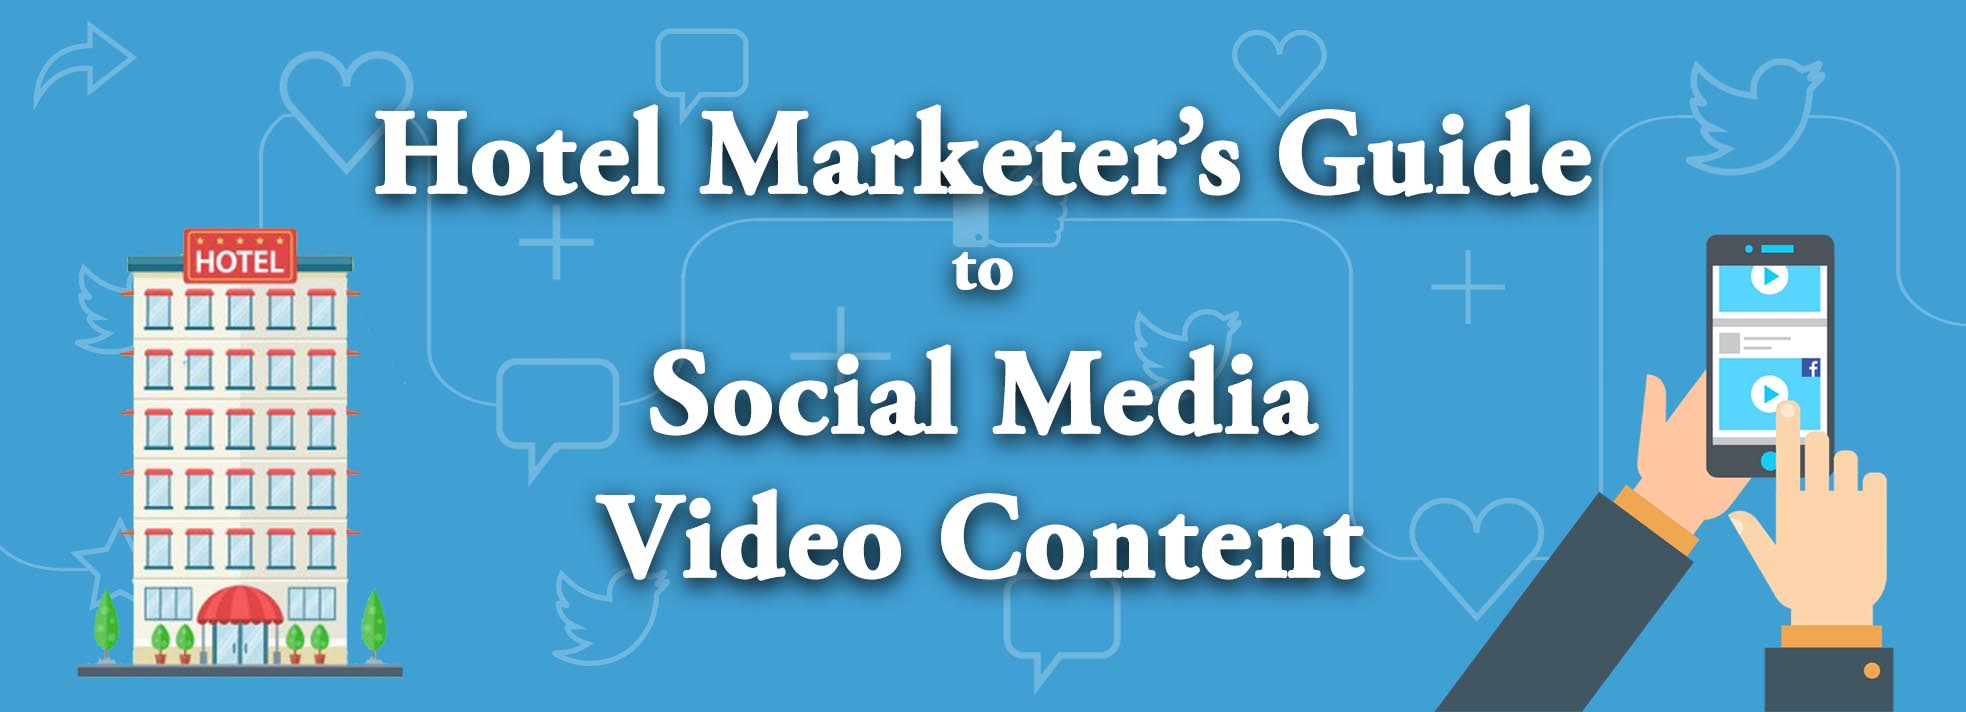 Hotel Marketer's Guide to Social Media Video Content